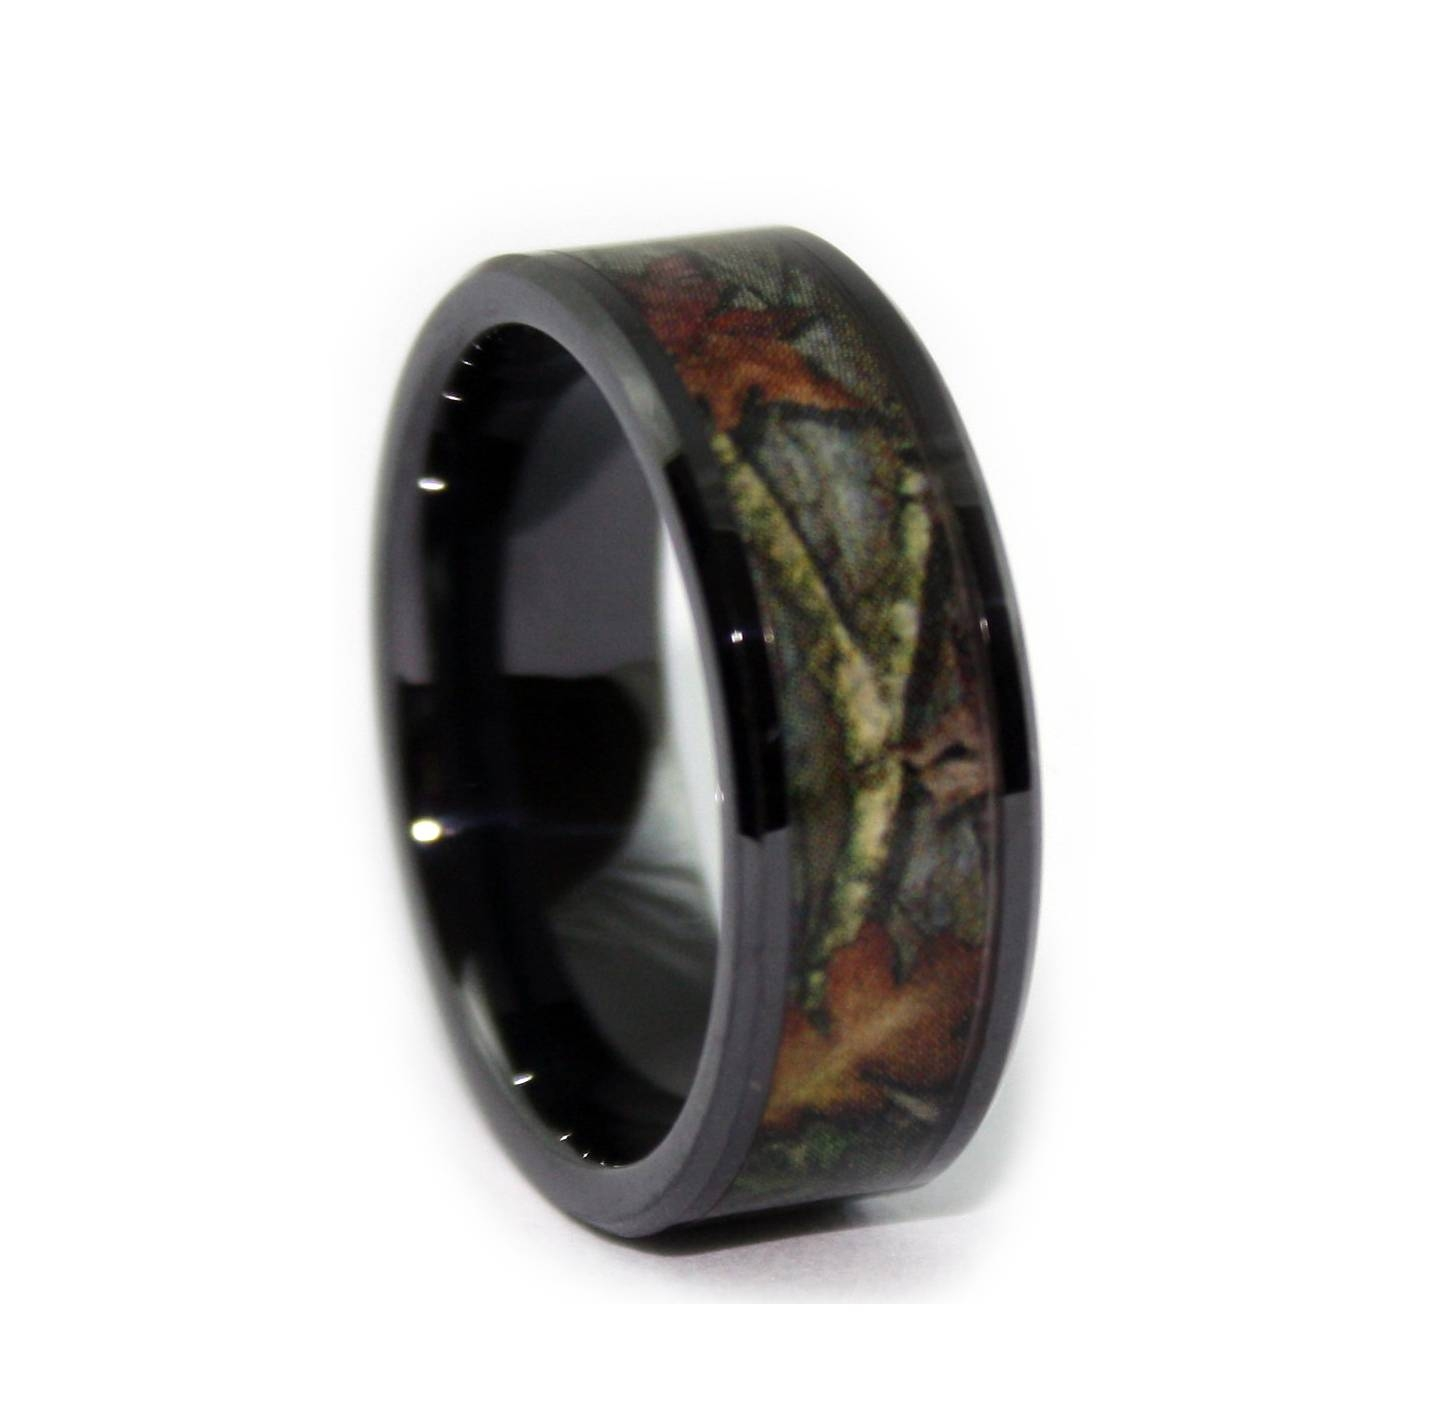 Camo Wedding Rings – Black Ceramic Ring – Camouflage Band Regarding Outdoorsman Wedding Bands (View 4 of 15)